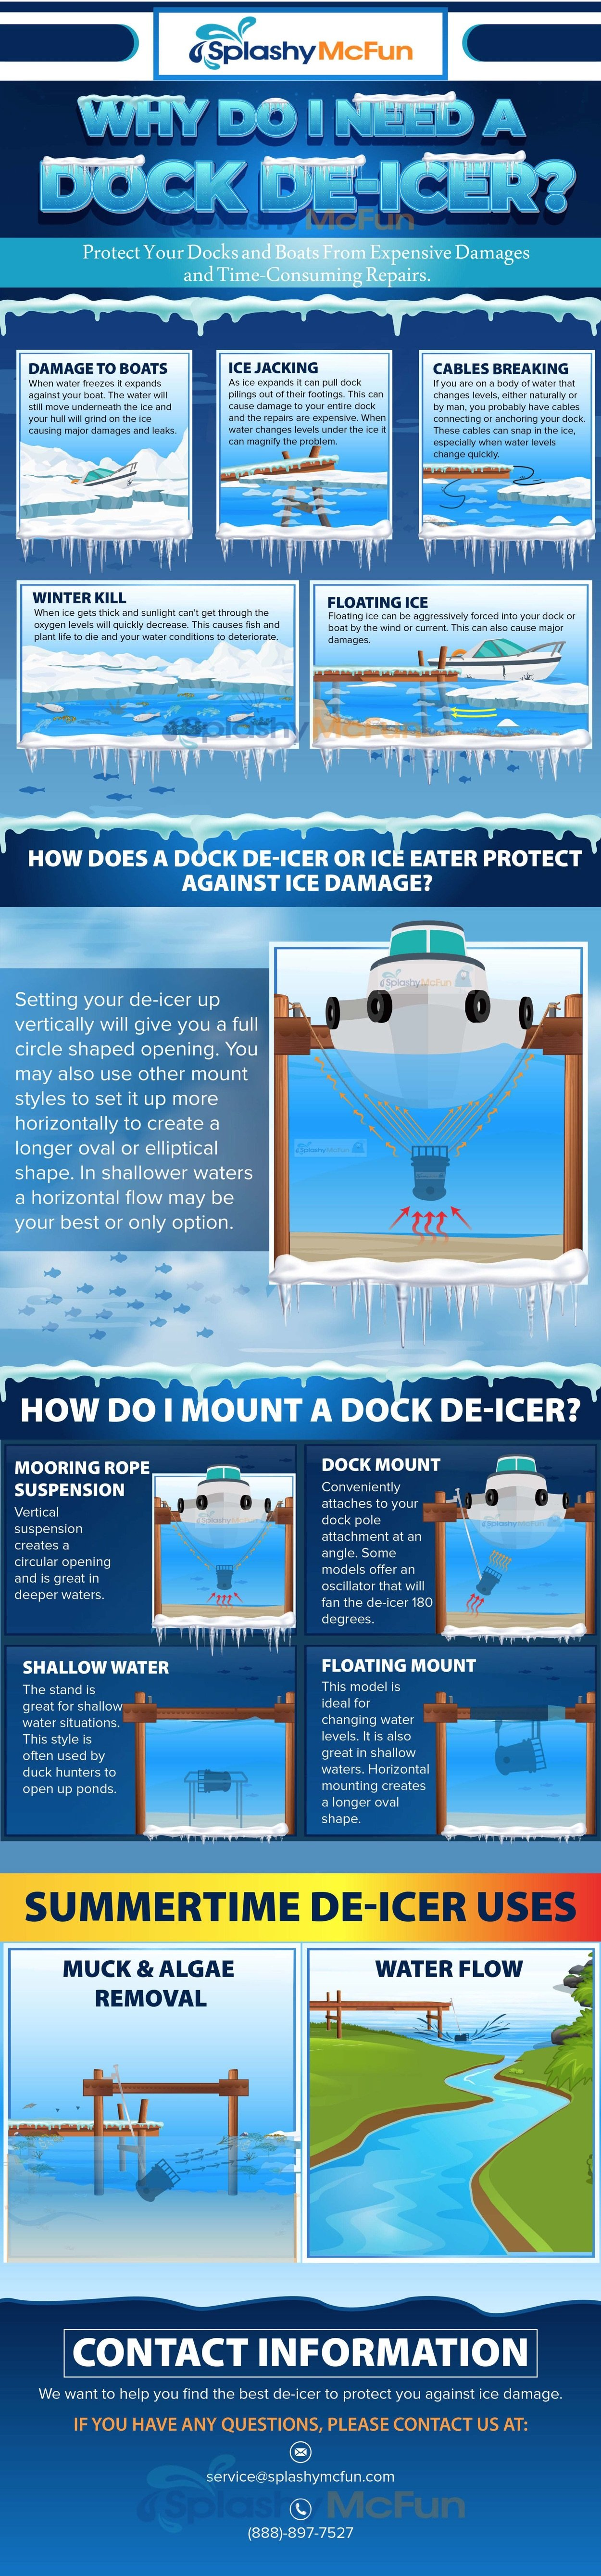 Dock De-Icer and Ice Eater Information Guide